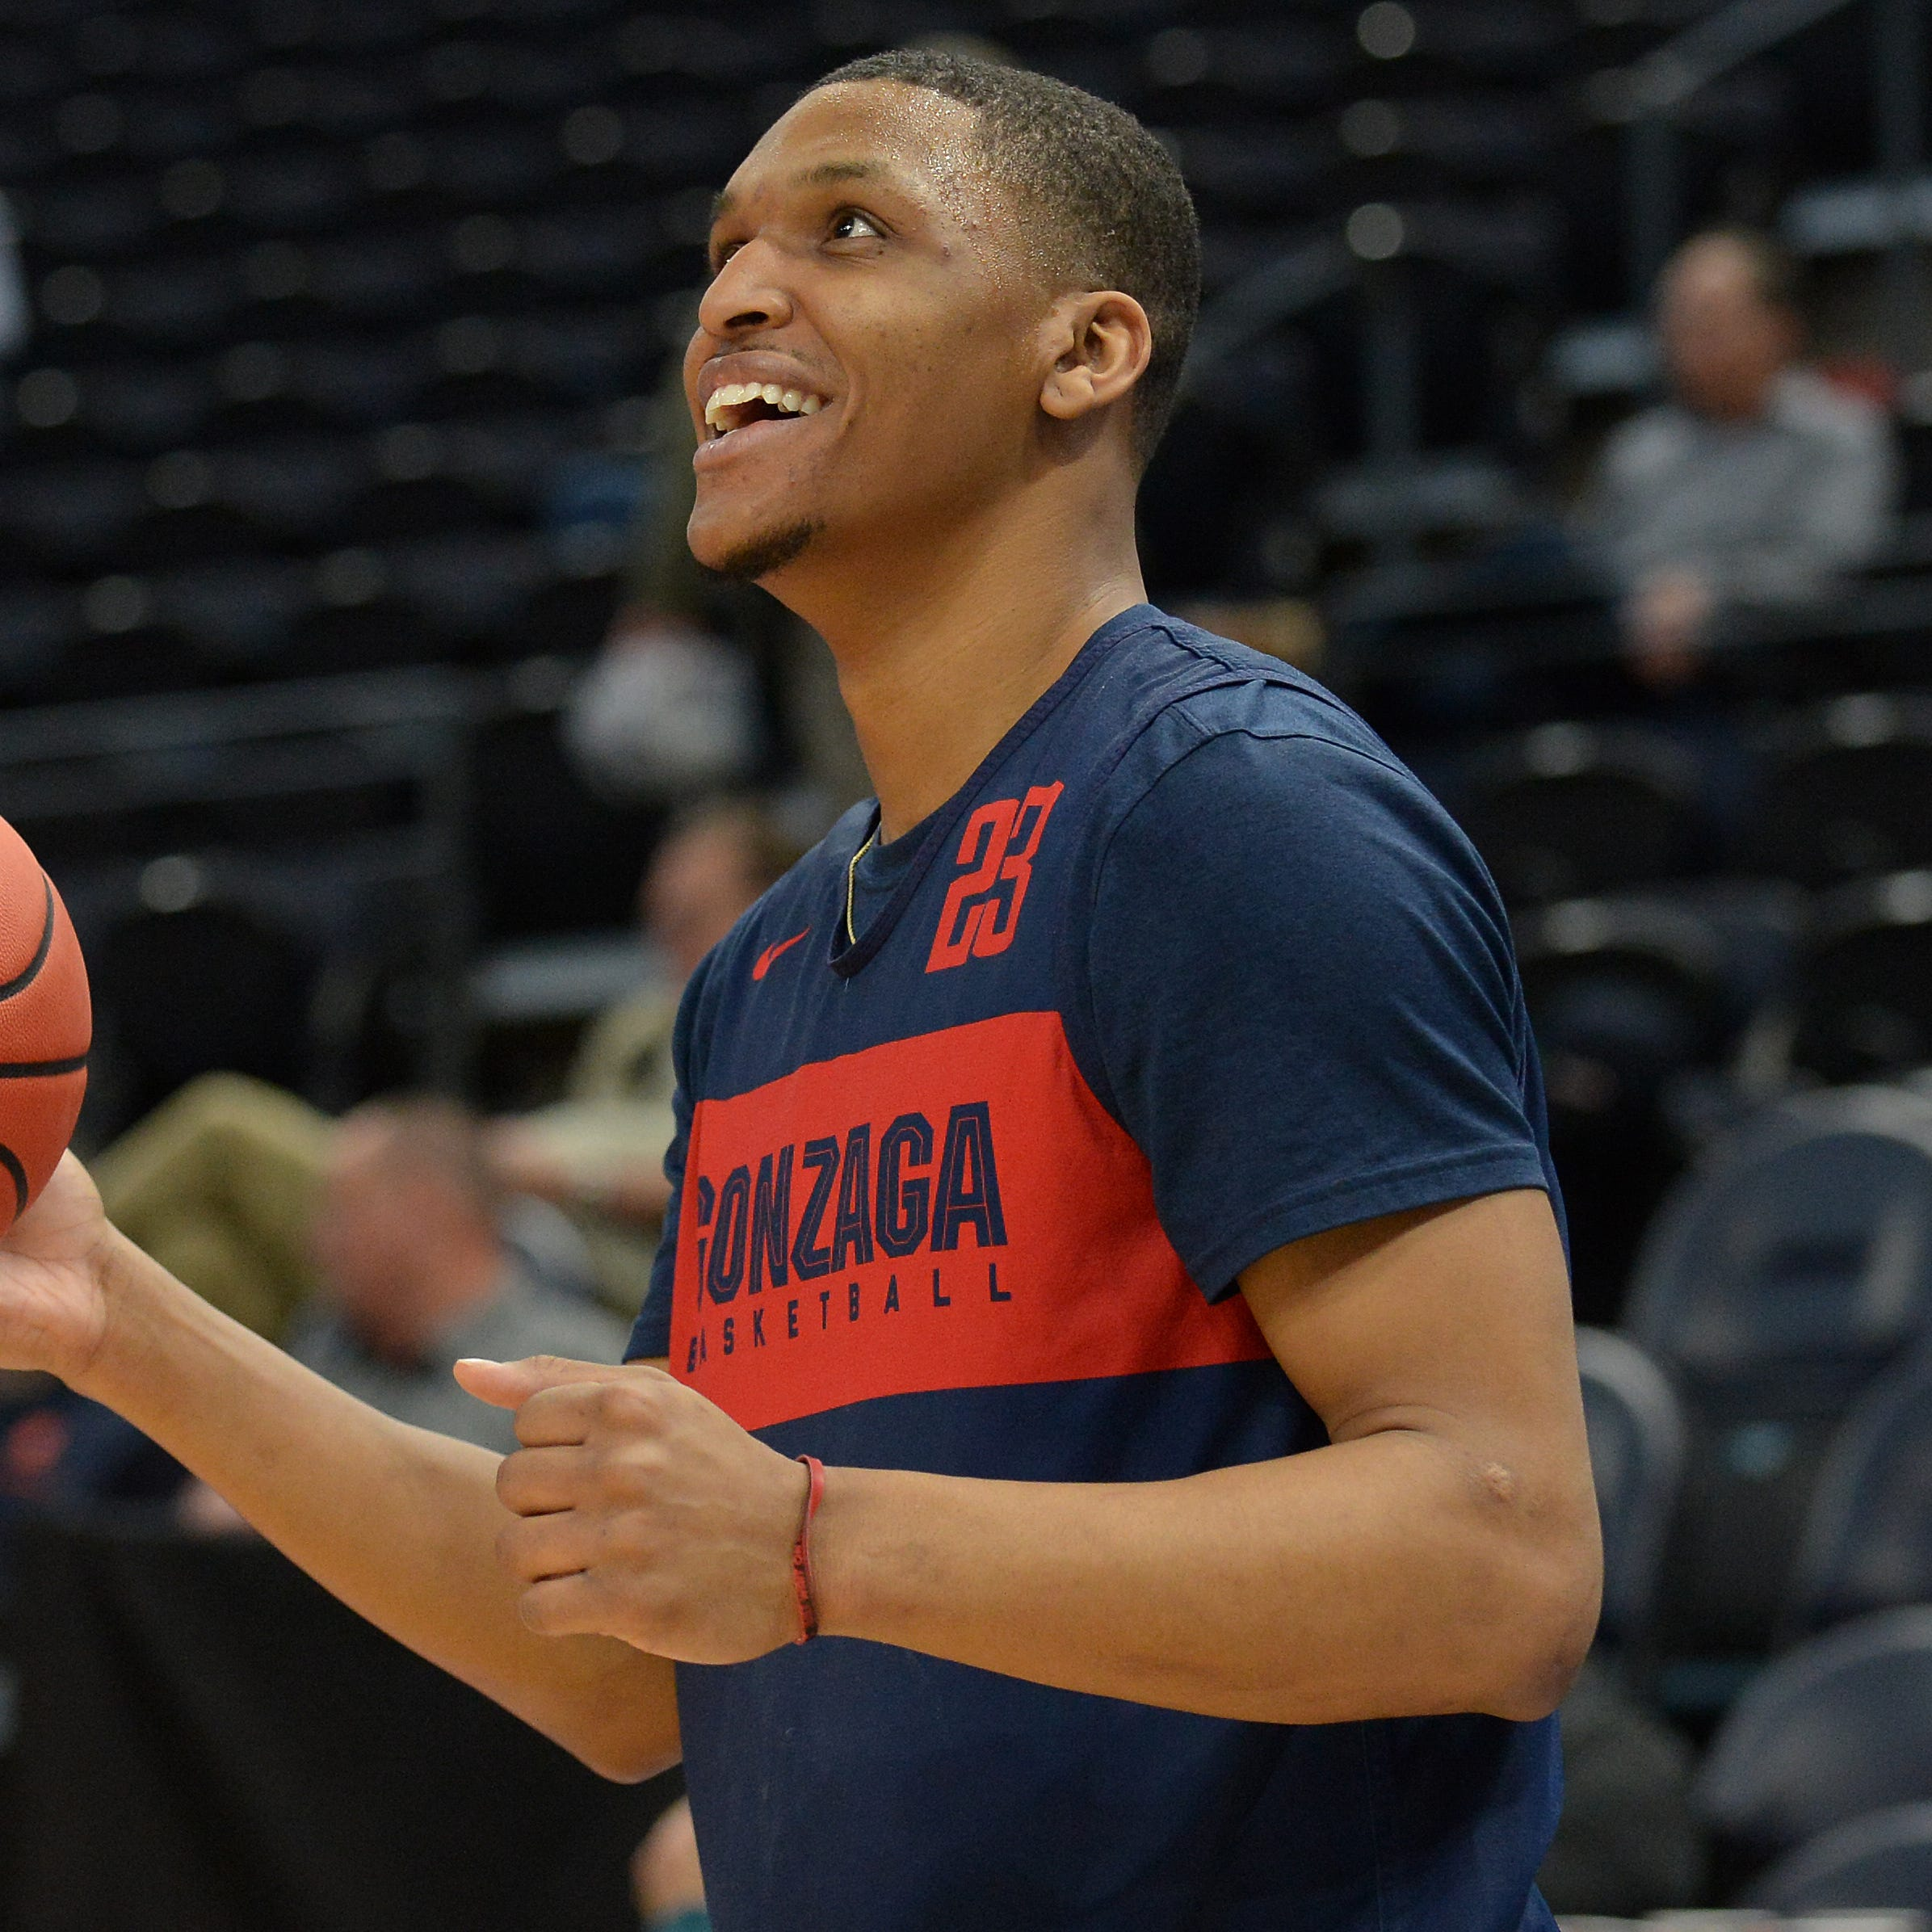 Gonzaga guard Zach Norvell Jr. chasing basketball dream his father couldn't